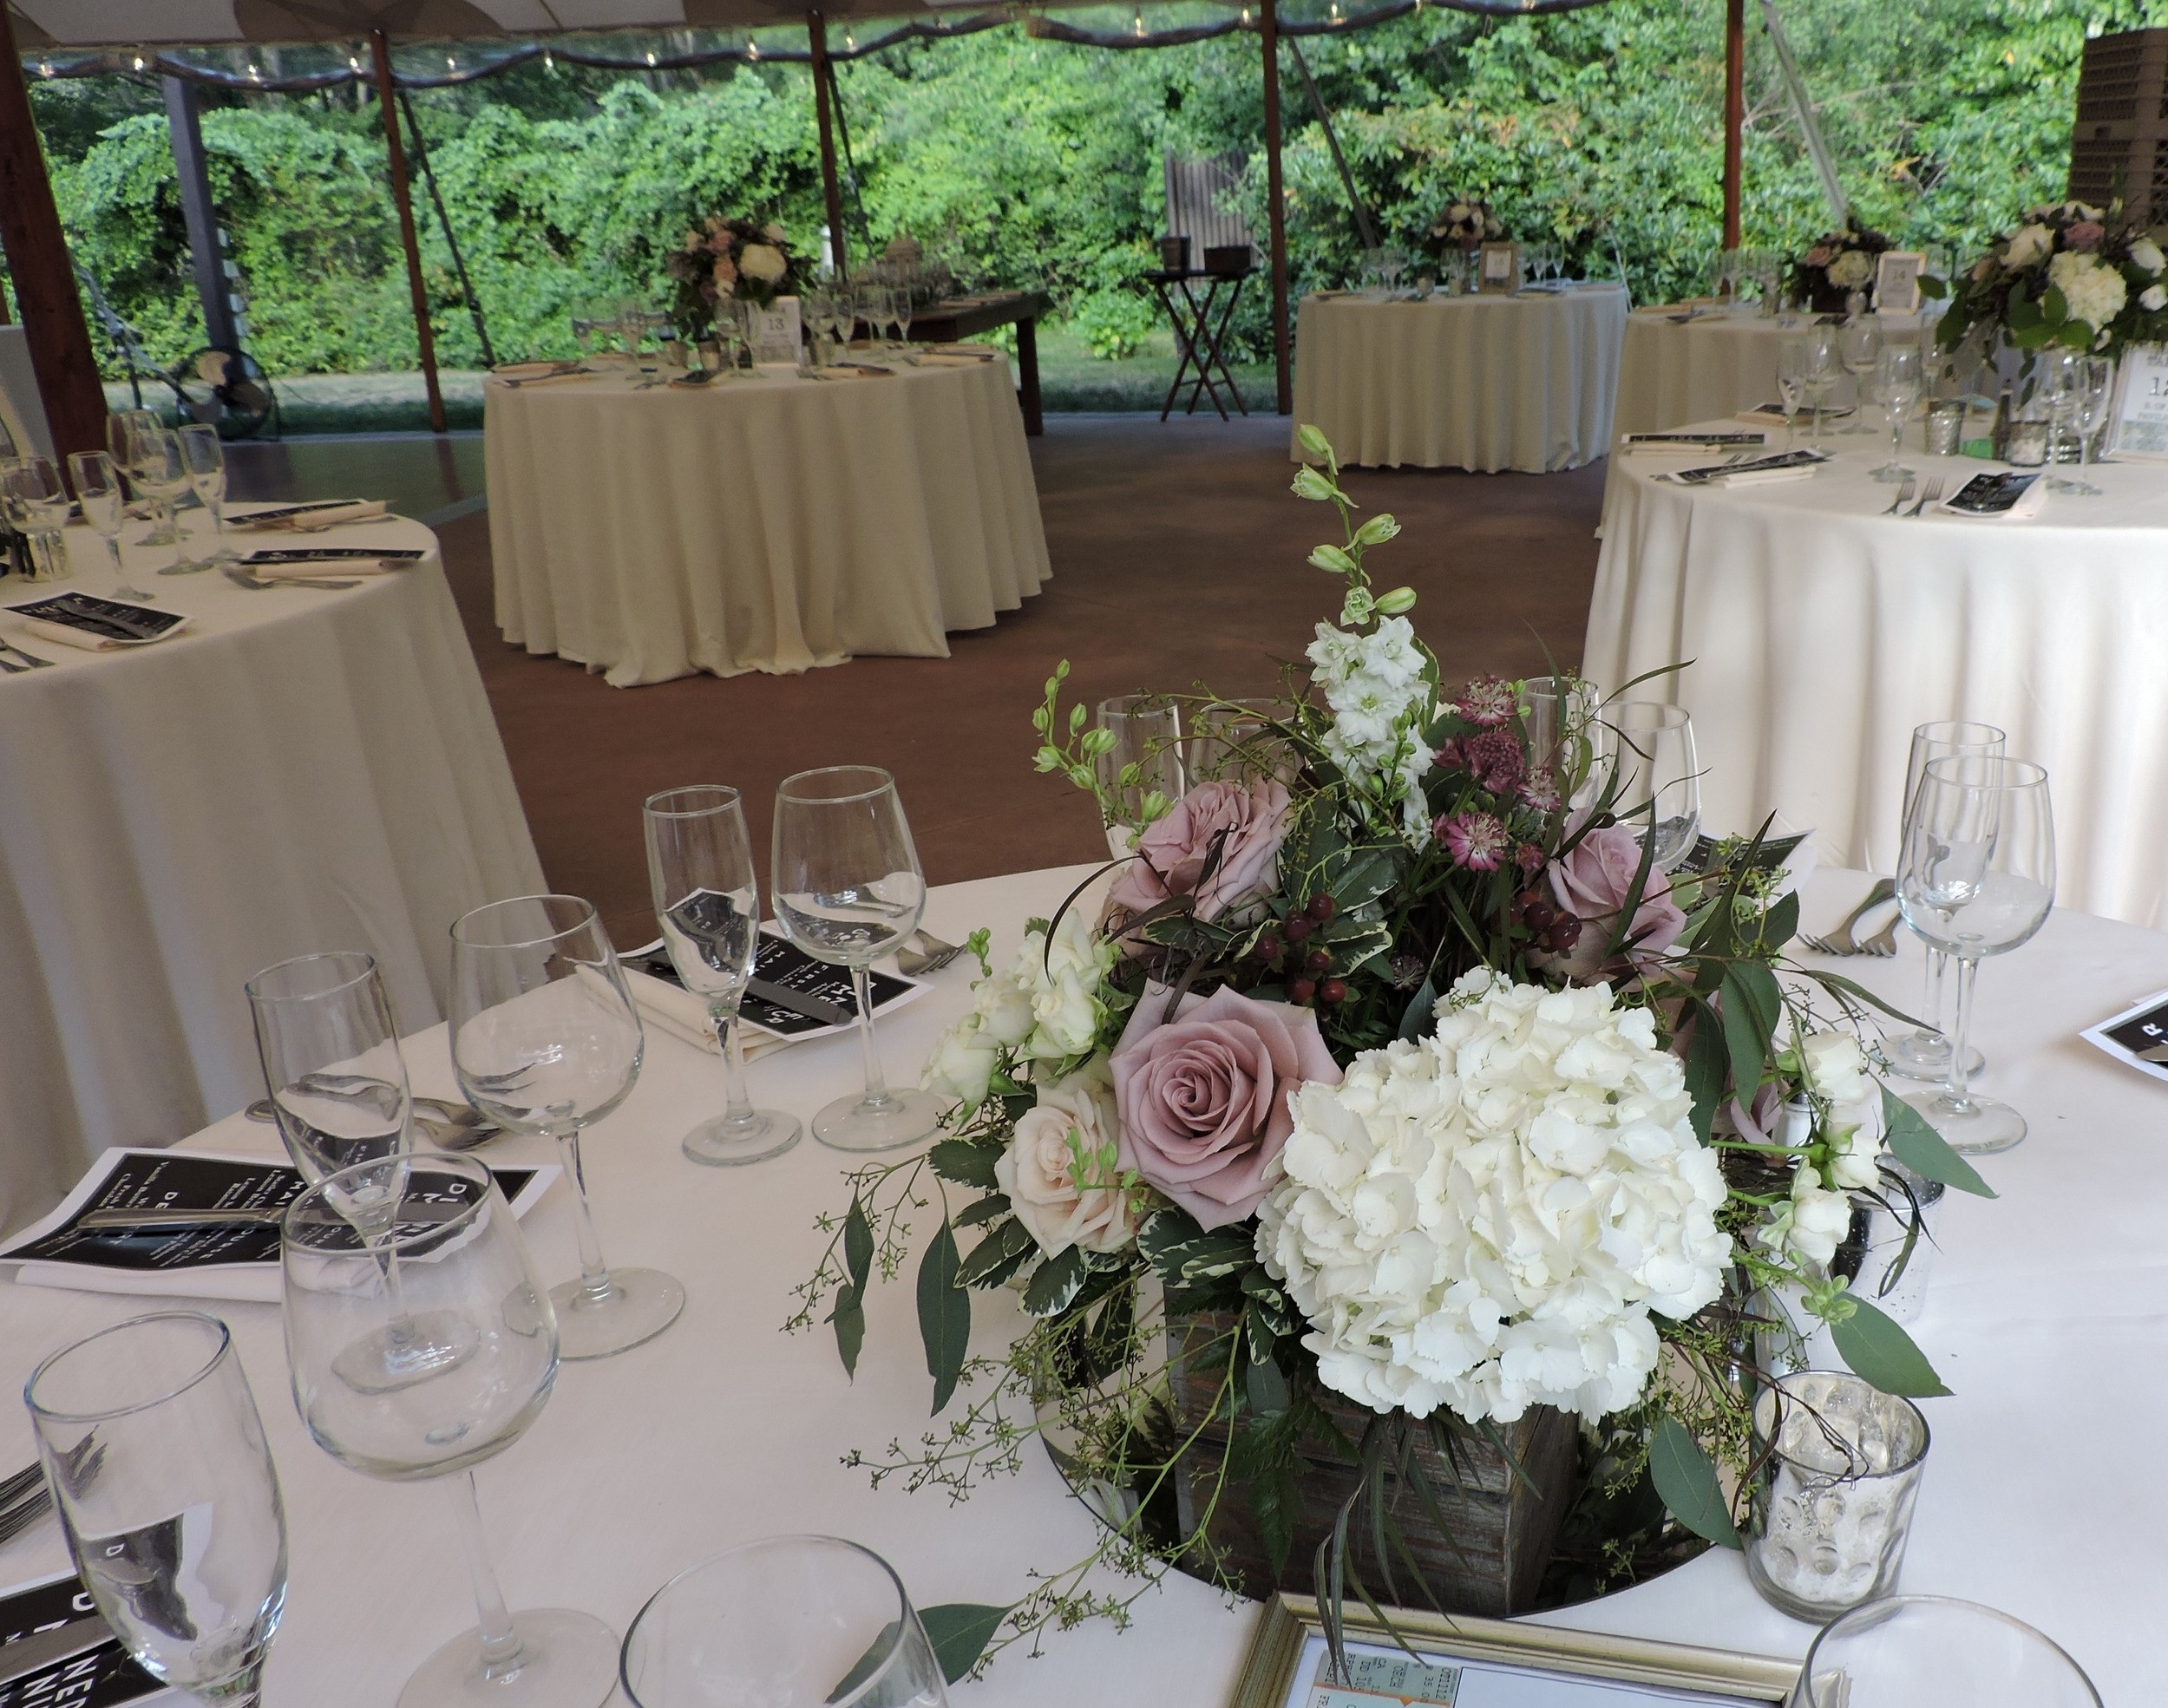 Amnesia roses with white hydrangeas in rustic gray wooden box create the perfect centerpiece for a wedding at Willowdale Estate, by Maureen Christmas AIFD CFD EMC of Floral Notes, Acton, MA